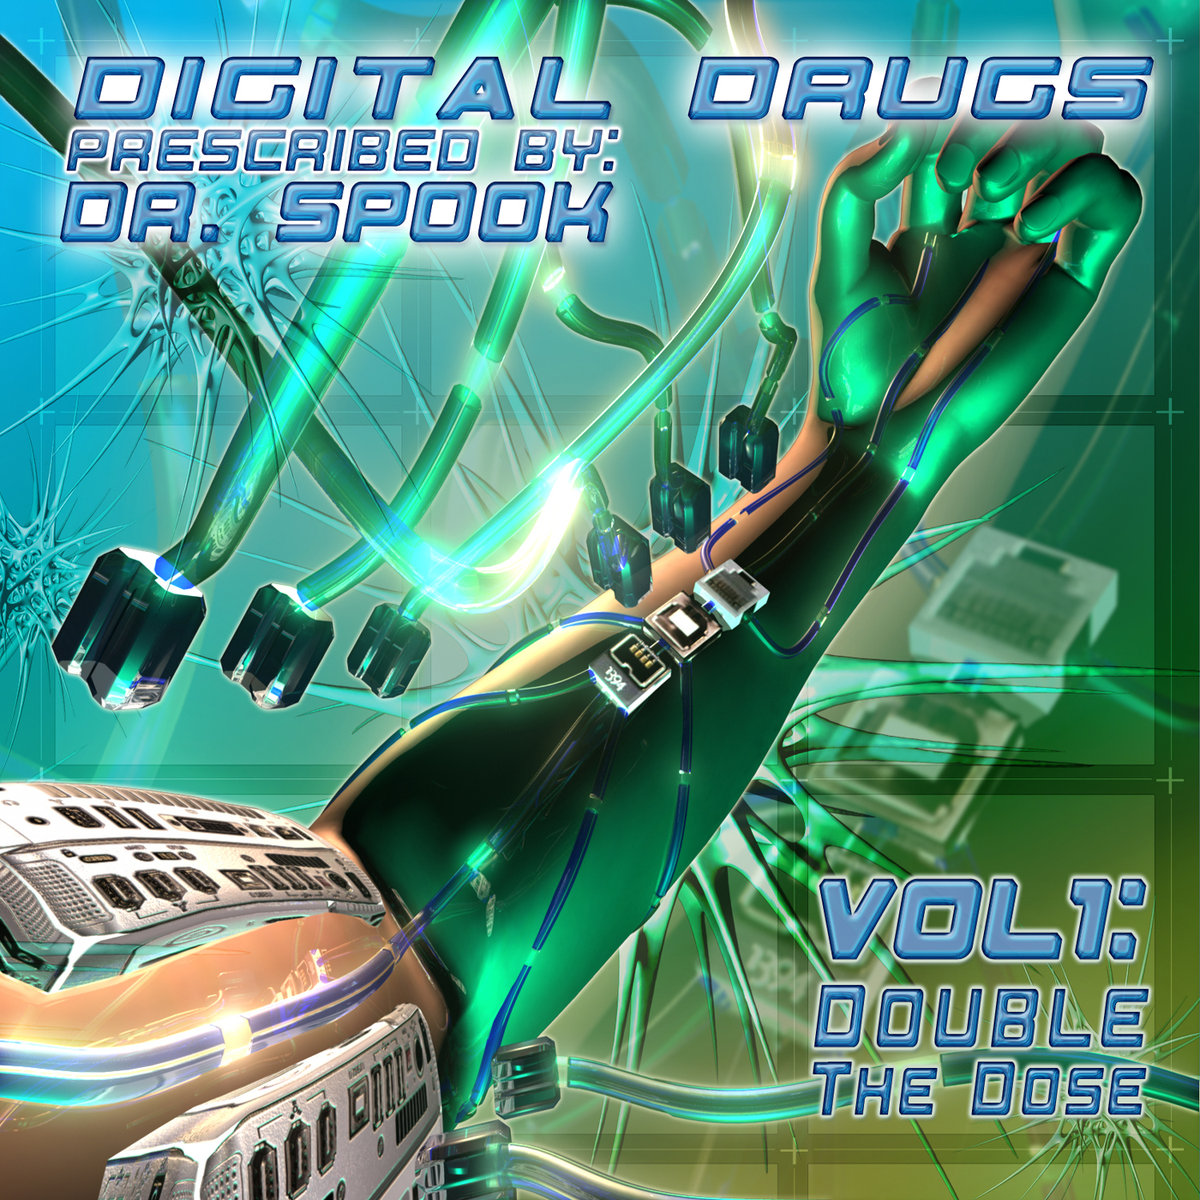 Arabali (Mubali vs. Arahat) - Lunar Freeqz @ 'Various Artists - Digital Drugs Vol.1: Double the Dose (Prescribed by Dr. Spook)' album (electronic, goa)